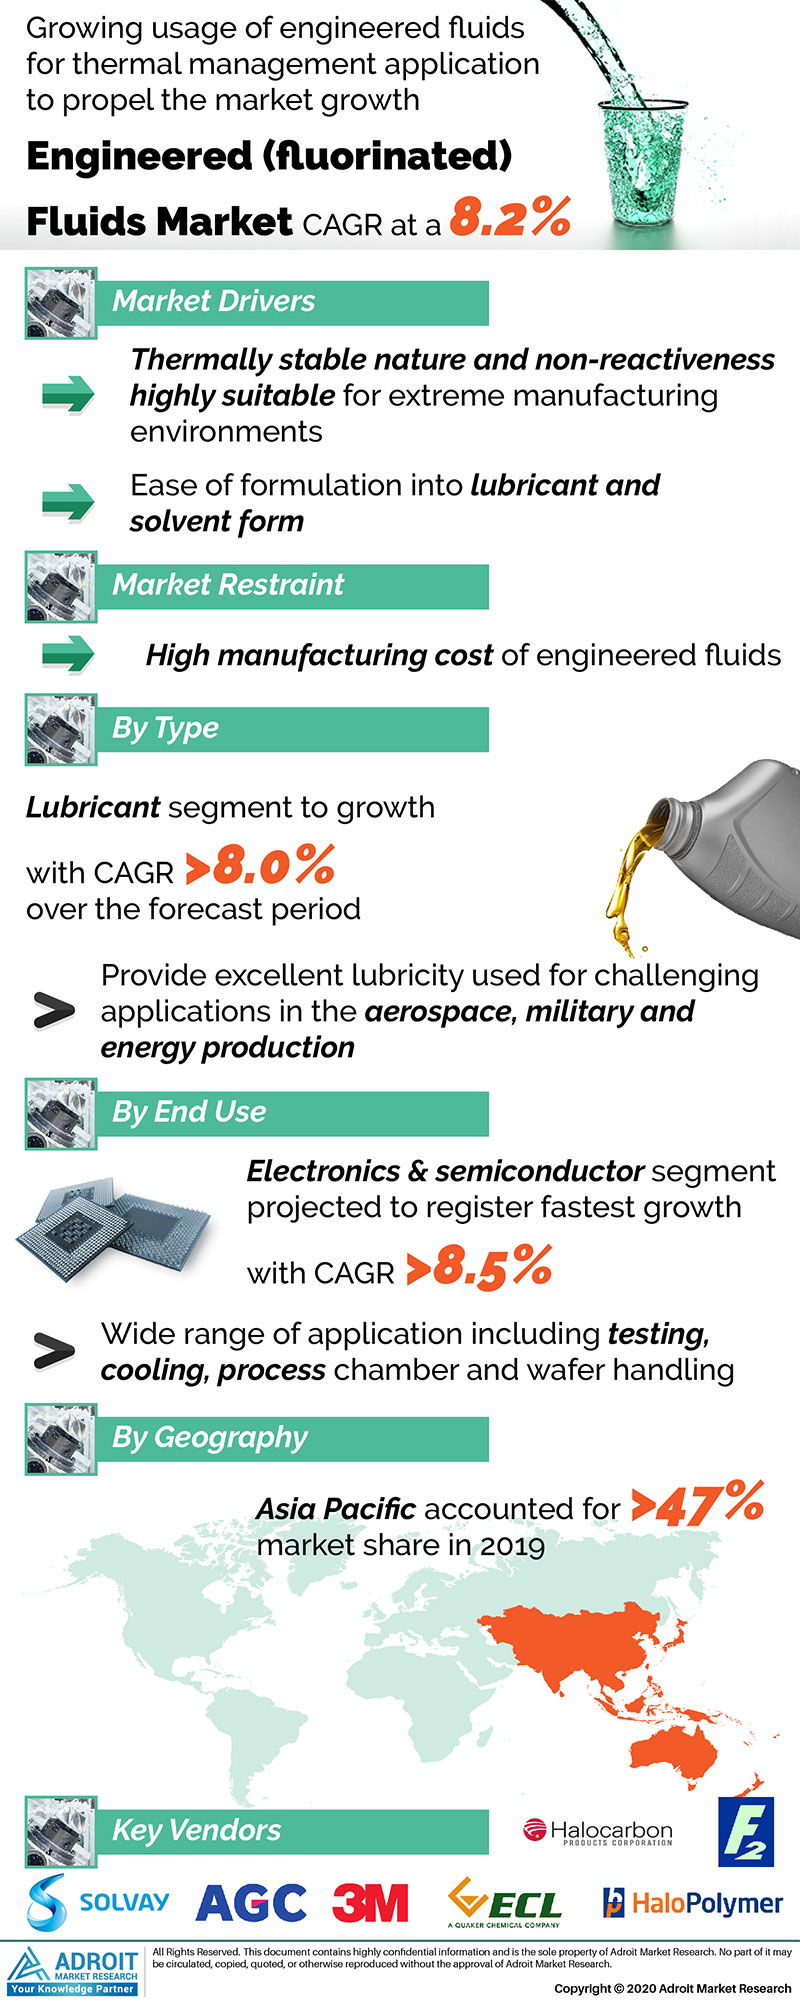 Engineered (fluorinated) Fluids Market by Material, Application, and Region, Global Forecasts 2018 to 2025